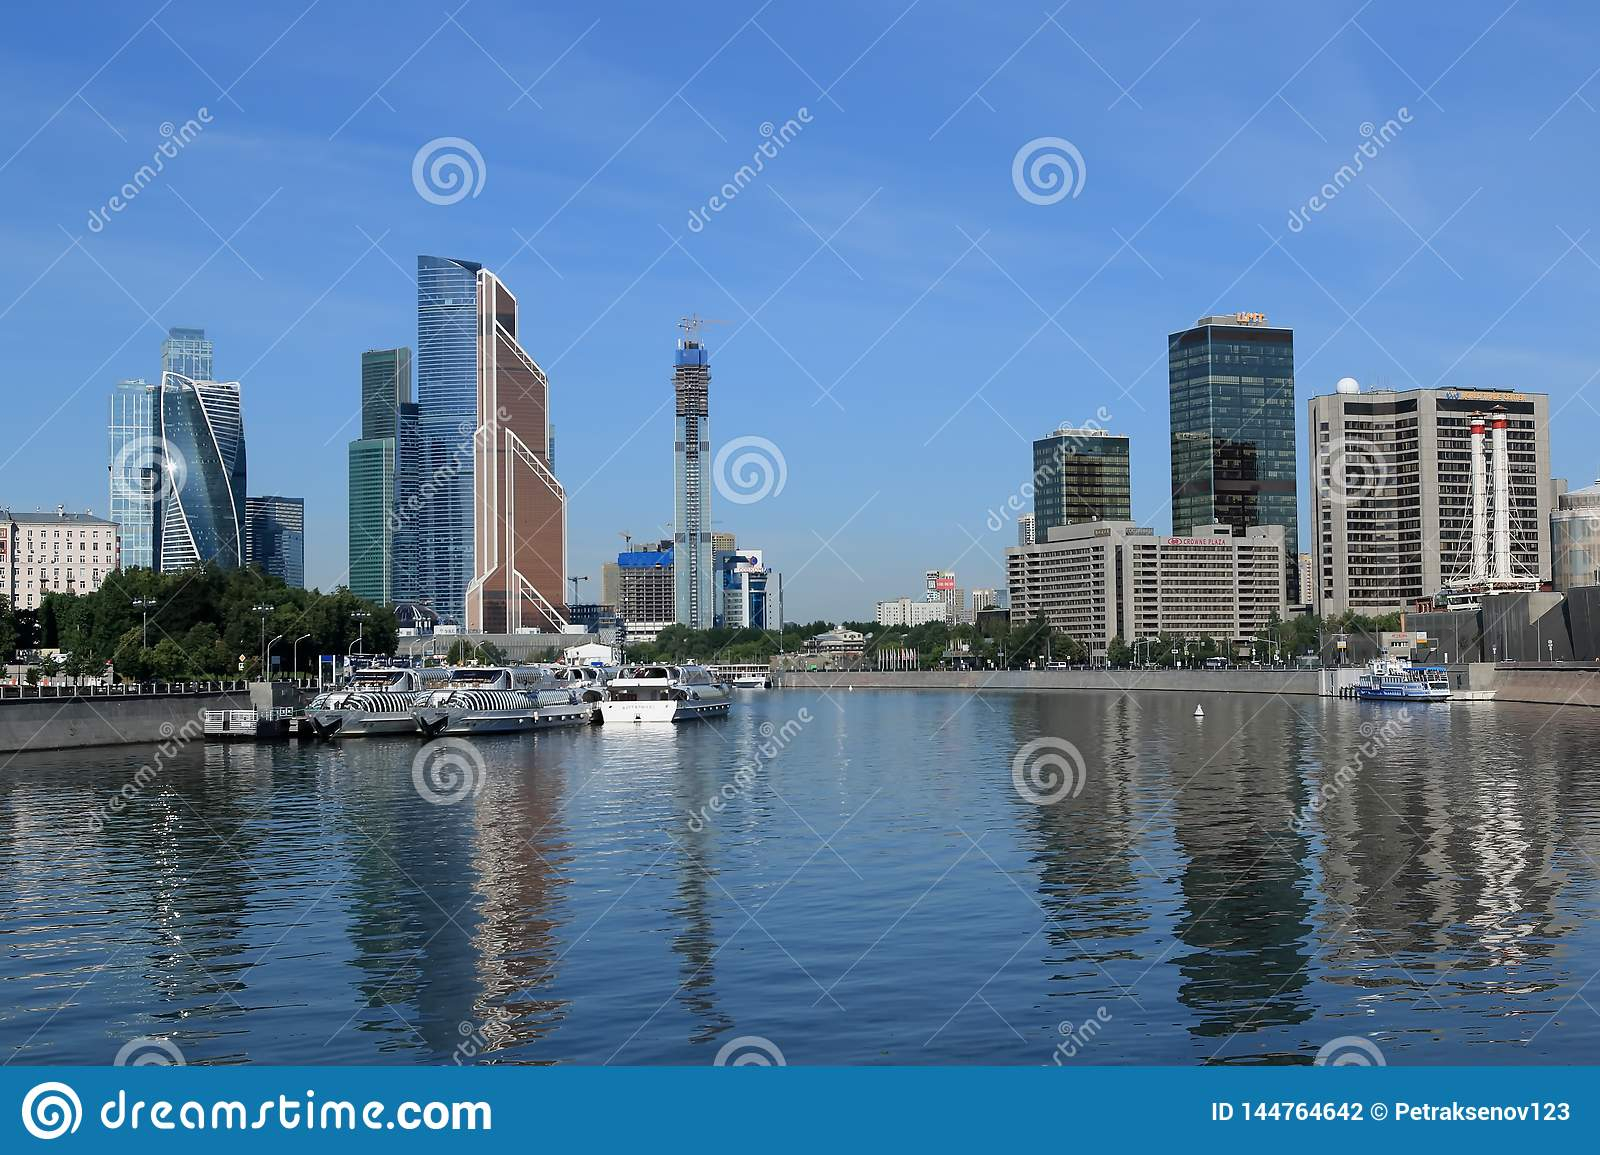 Moscow, Russia - June 16, 2018: Moscow summer cityscape with river and high-rise buildings